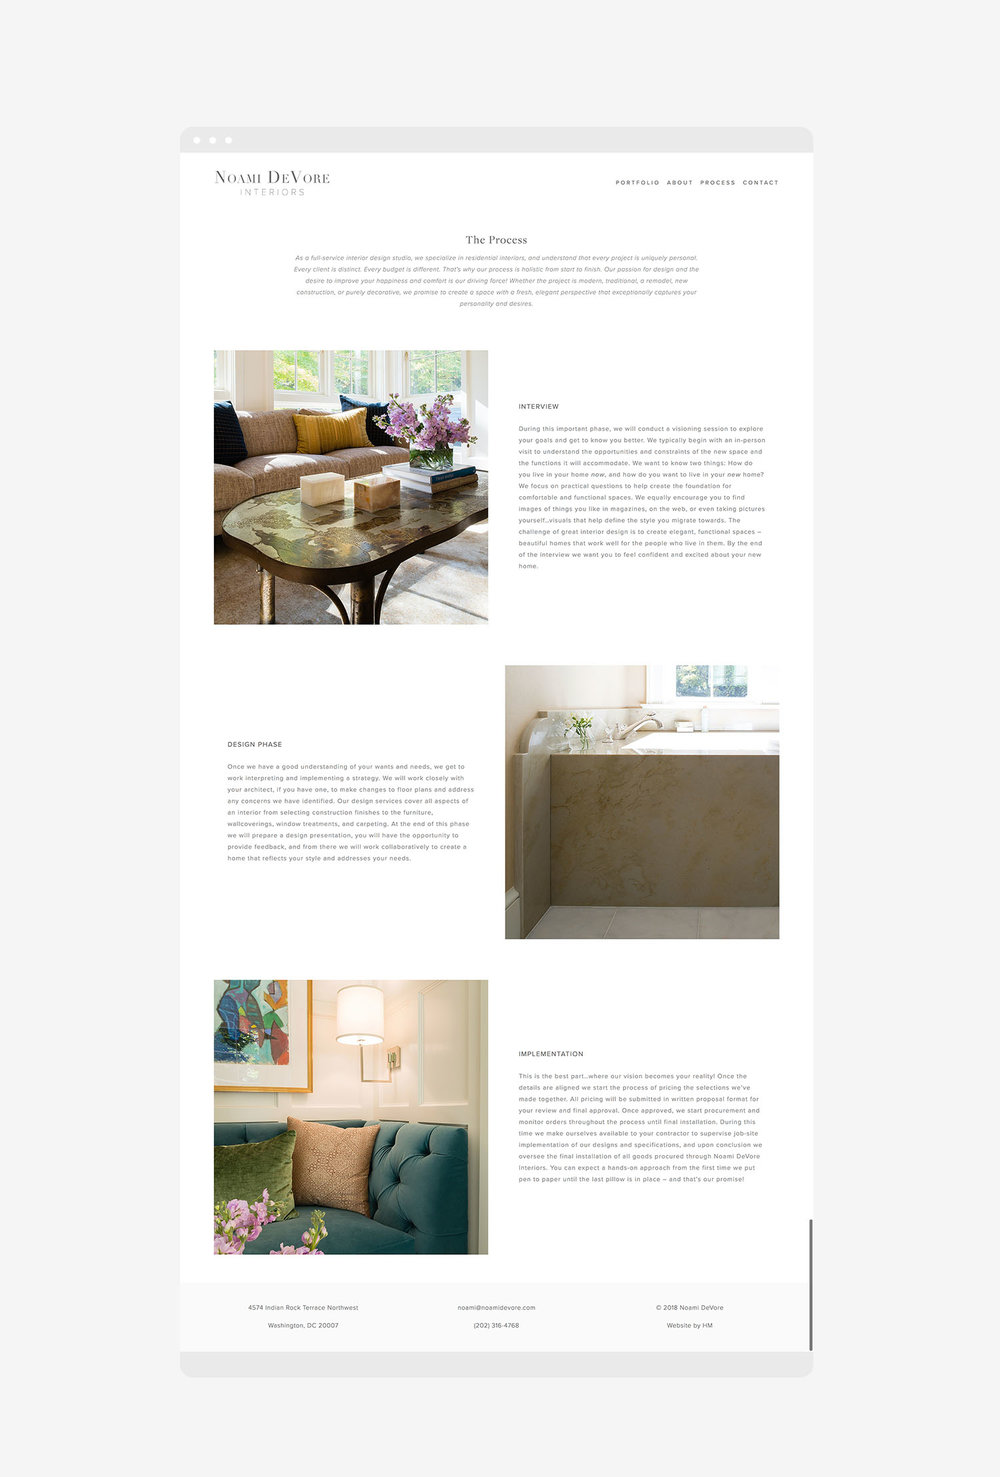 Noami_DeVore_Interiors_Squarespace_Website_Process_Layout_Design_UI_Heather_Maehr_Designer_Portland_Oregon.jpg